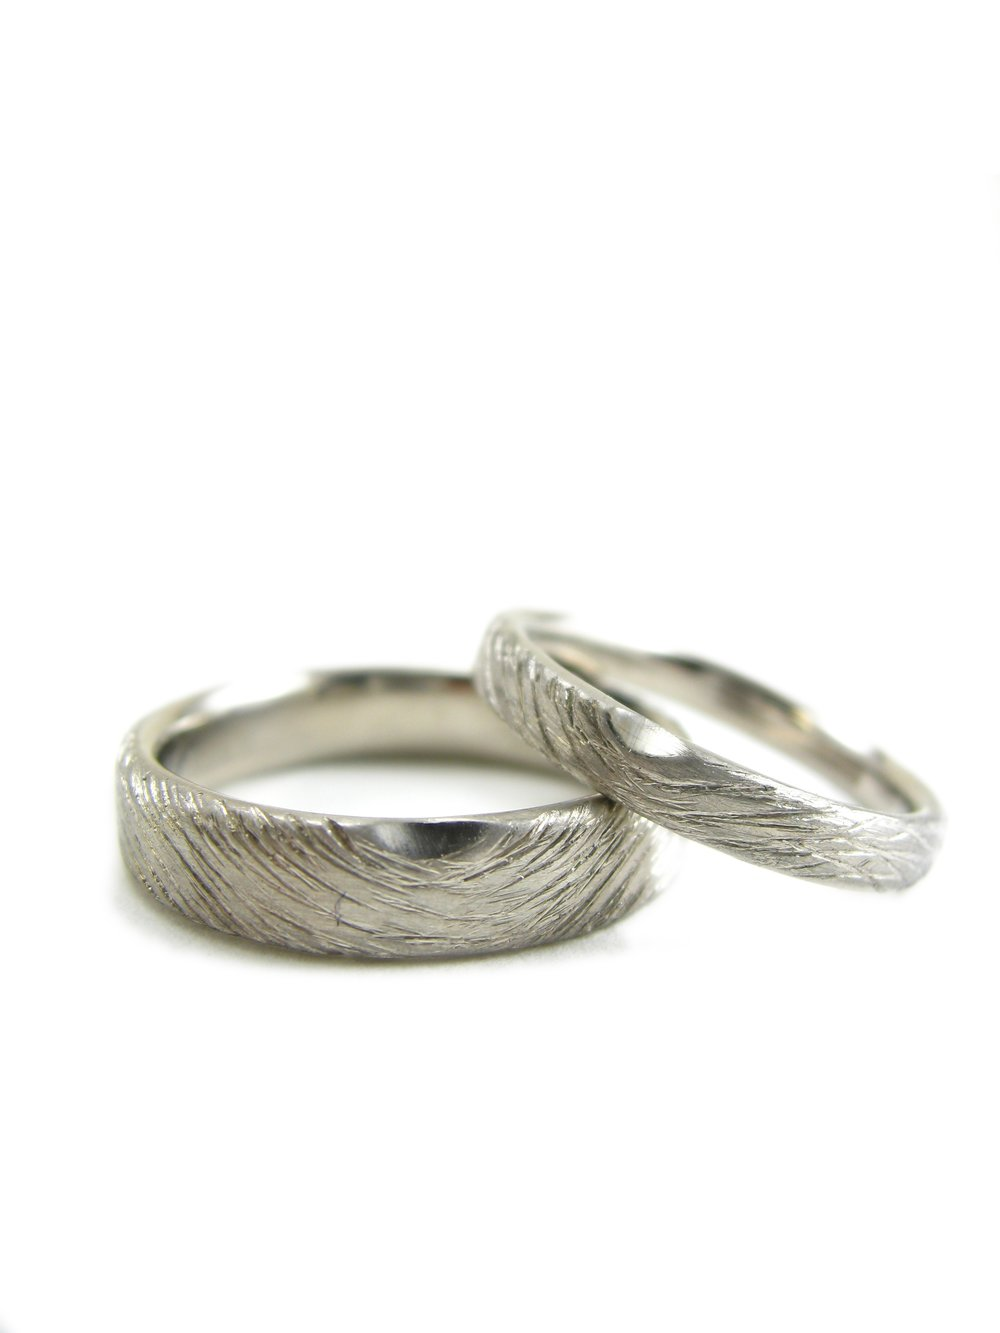 The finished rings. The bottom ring was created in a custom width.